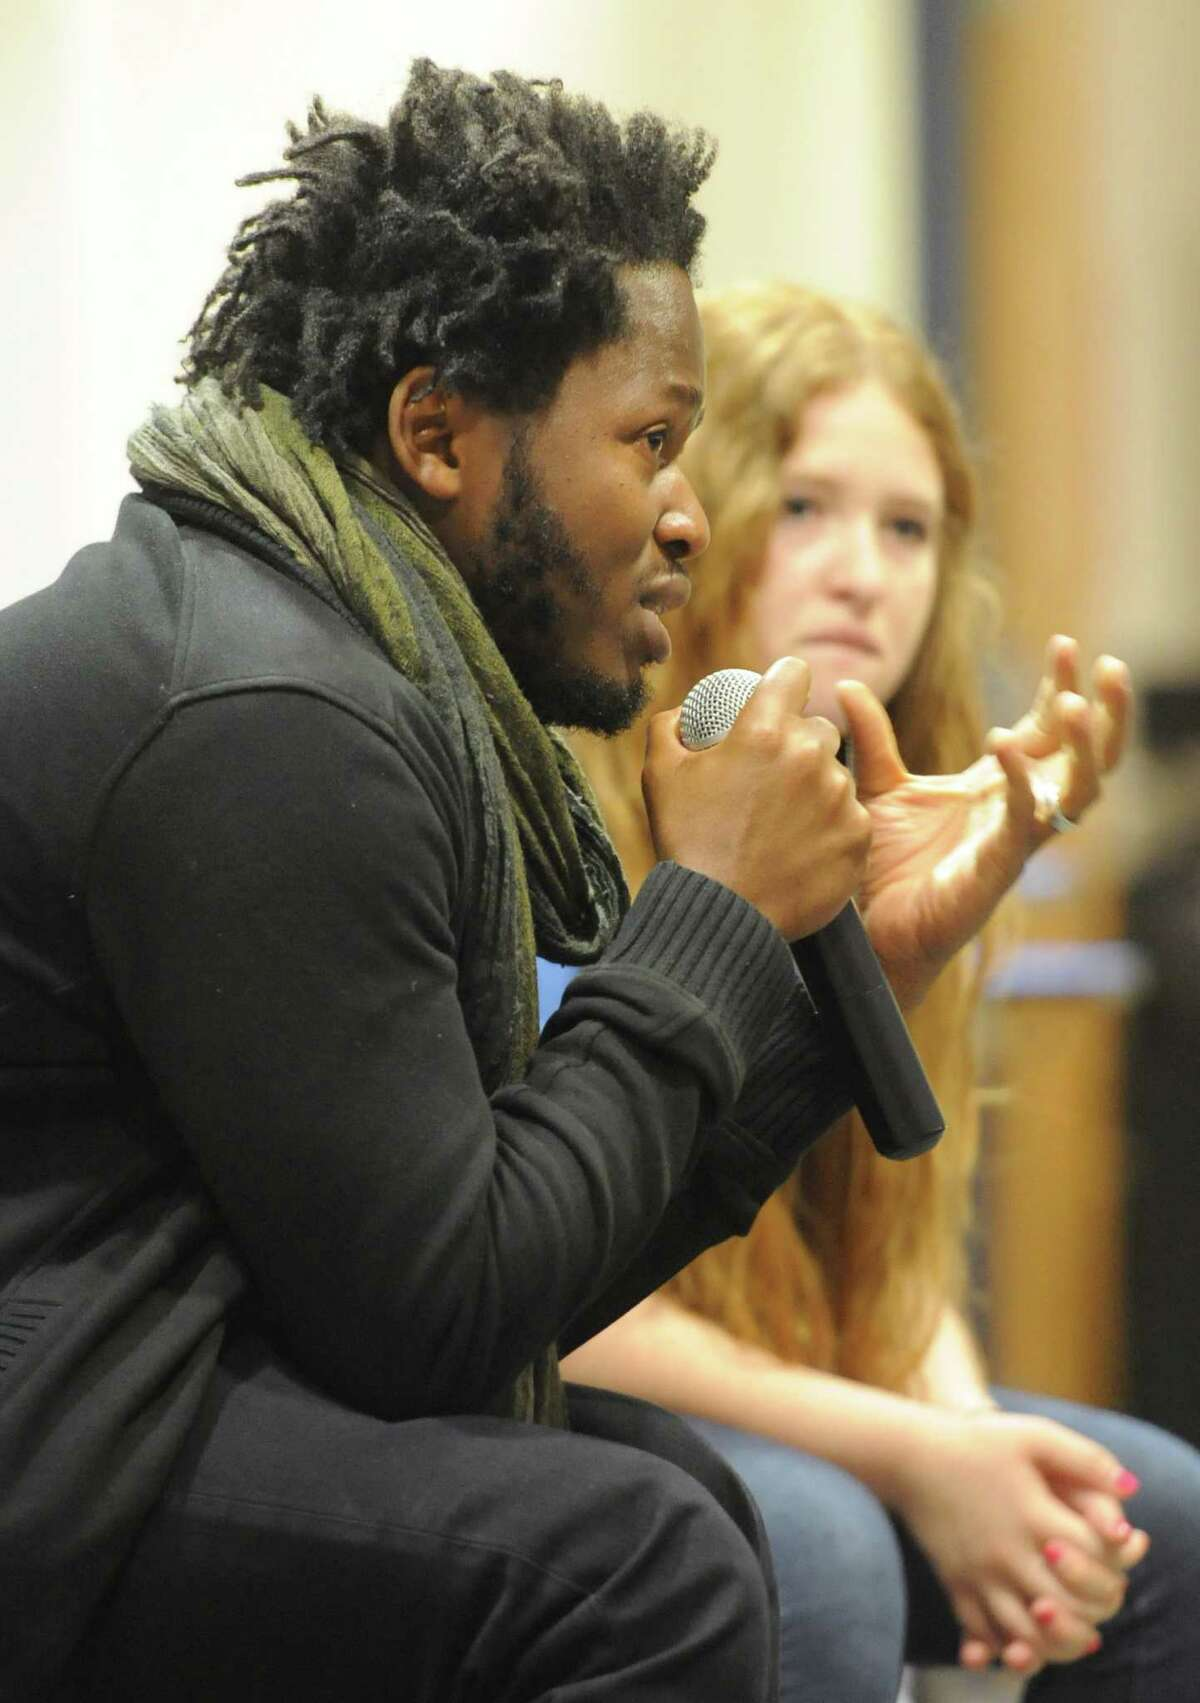 Keynote speaker Ishmael Beah and Newtown High School student activist Sarah Clements speak during the story exchange at the Honor With Action Youth Leadership Summit on Gun Violence Prevention at Newtown High School in Newtown, Conn. Saturday, May 24, 2014. The summit featured keynote speaker Ishmael Beah, a Sierra Leonean best-selling author and human rights activist. The event included many large group activities and small workshops such as story exchange, a young activist panel, a movie about Virginia Tech shooting survivor Colin Goddard, healing through the arts, and breakout sessions about spirituality and mental health. About 100 children from across the state and Harlem, N.Y. attended the summit.